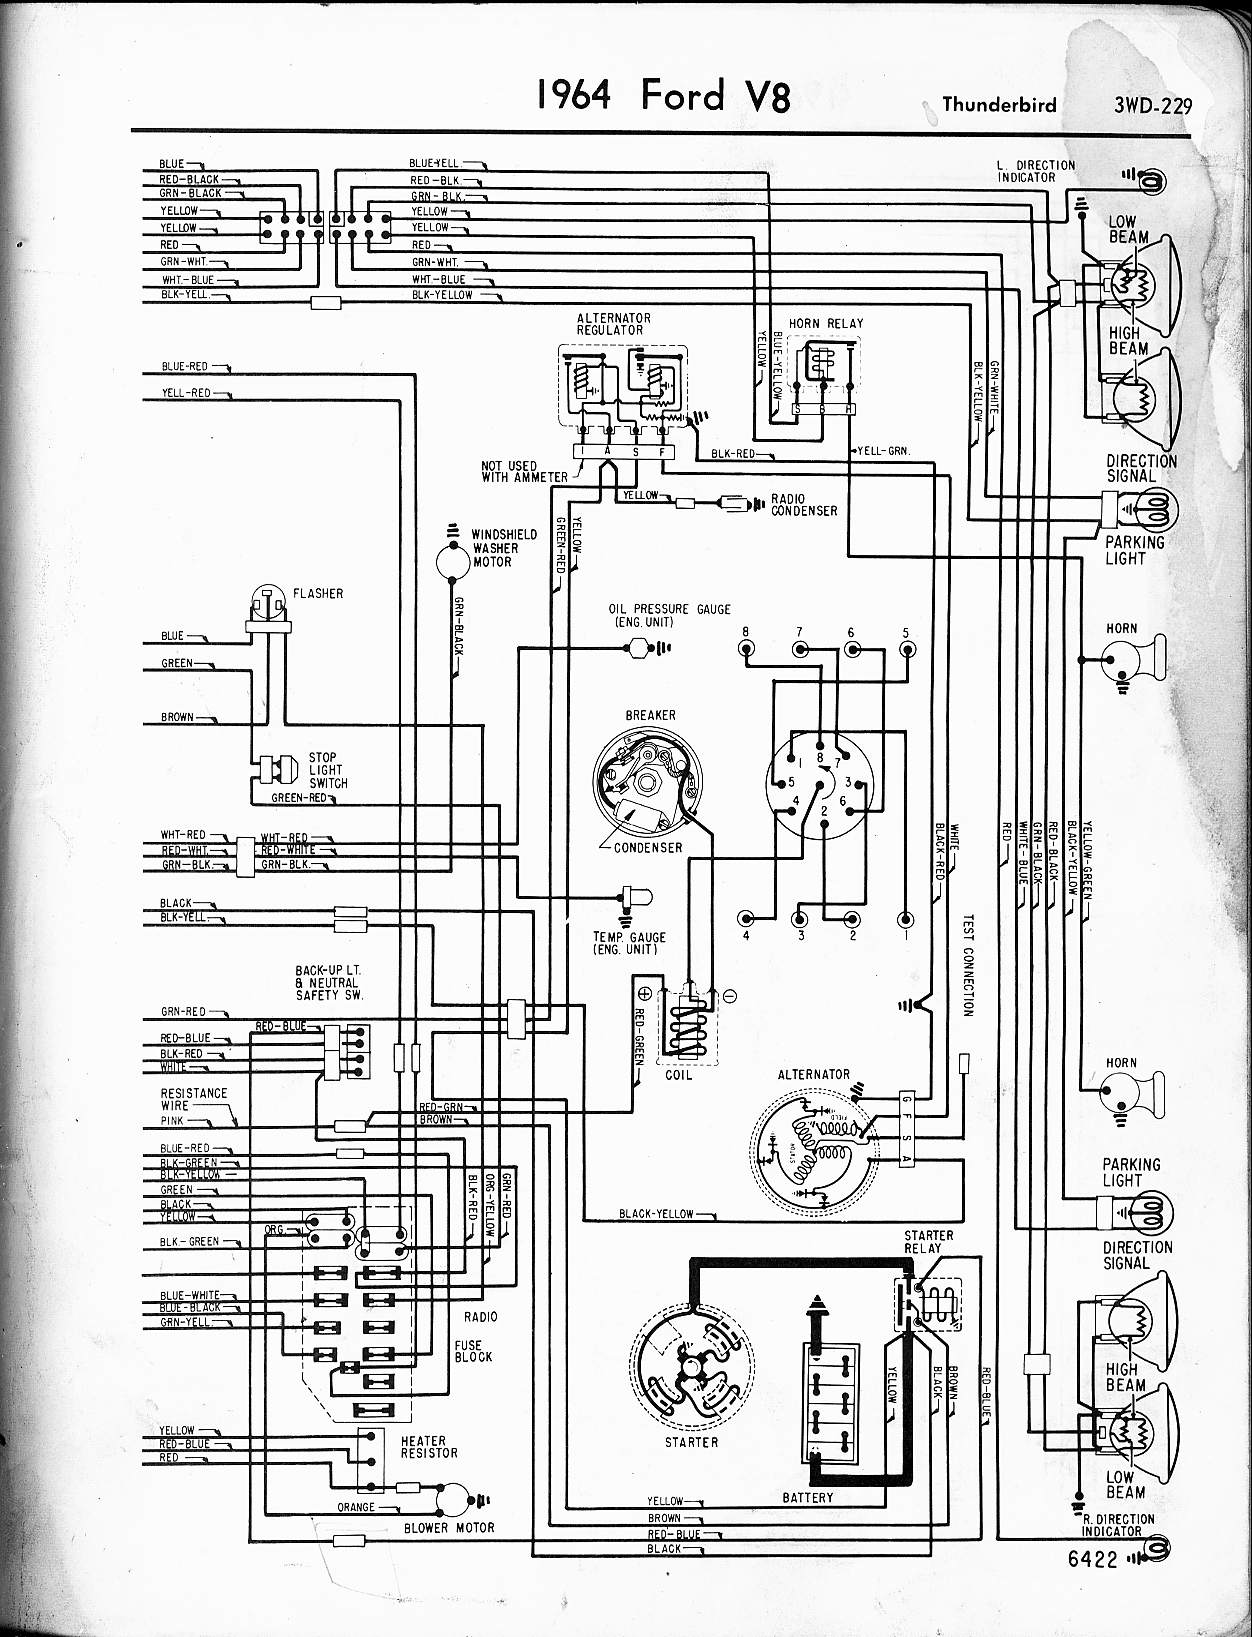 1964 Mustang Fuse Box Diagram Wiring Library Komatsu Schematics Fork Lift Fb13m Ford Thunderbird